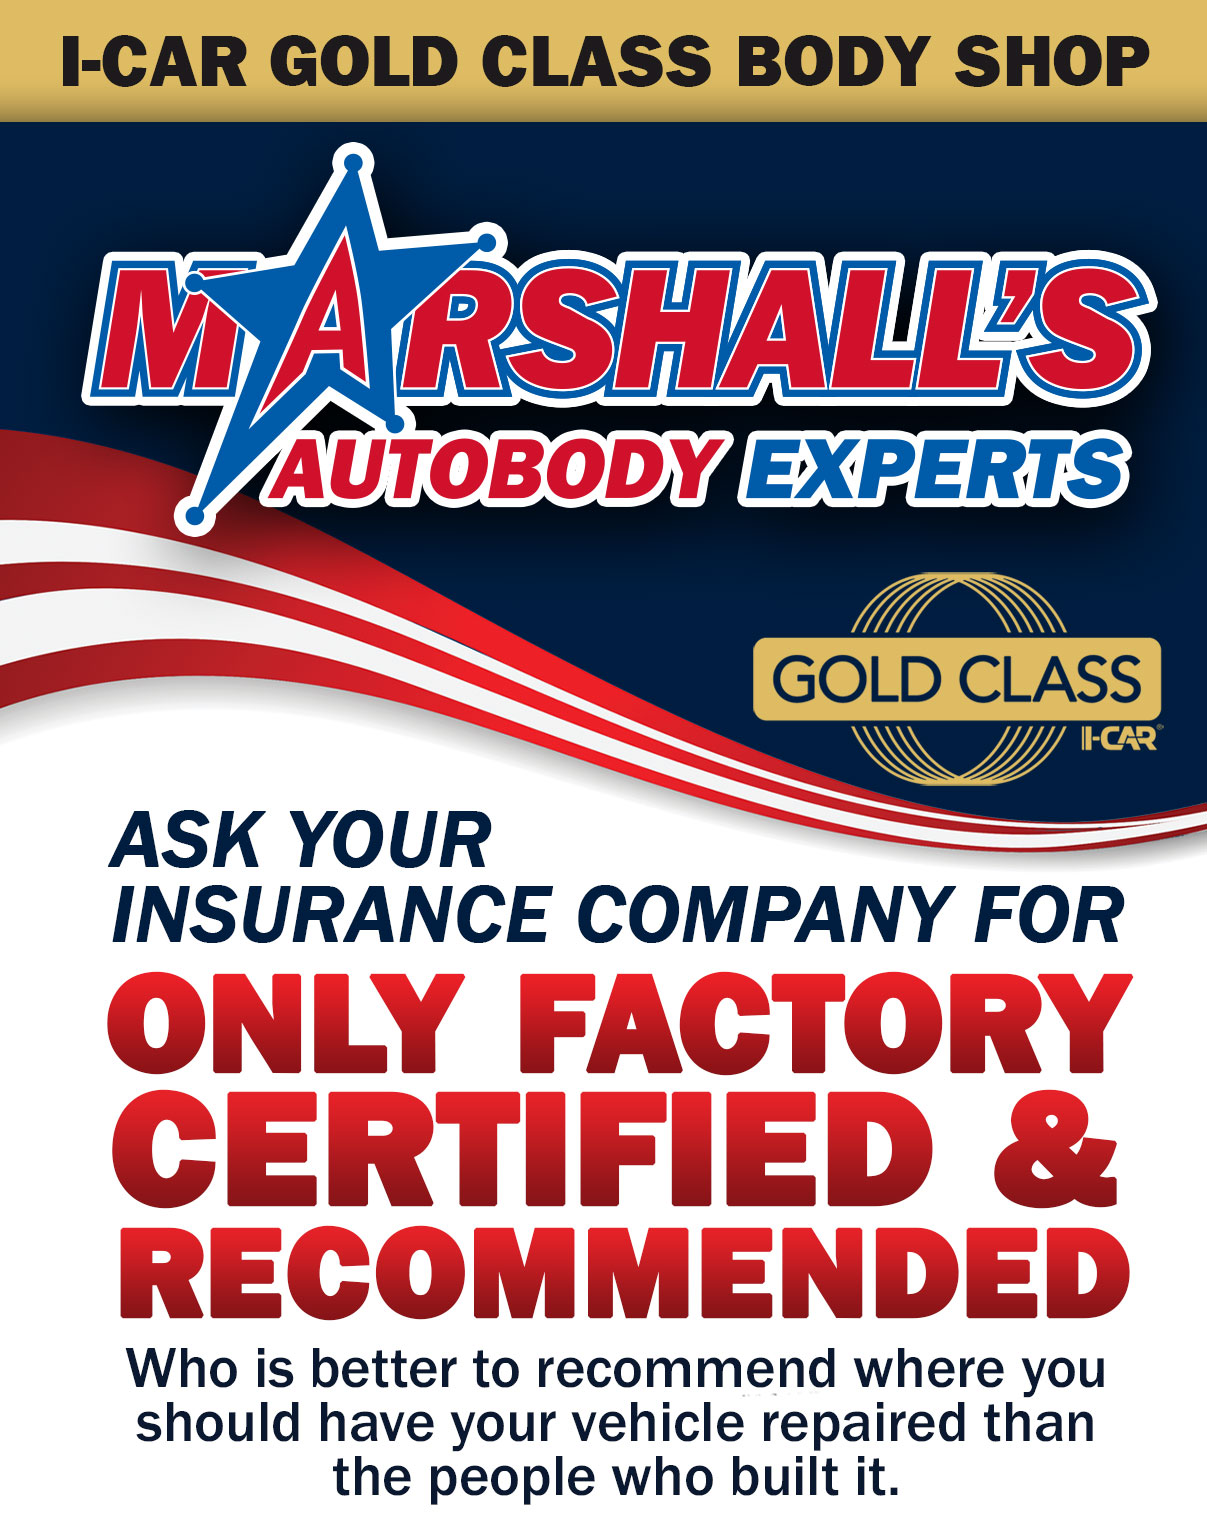 i-Car Gold Class Auto Body Shop